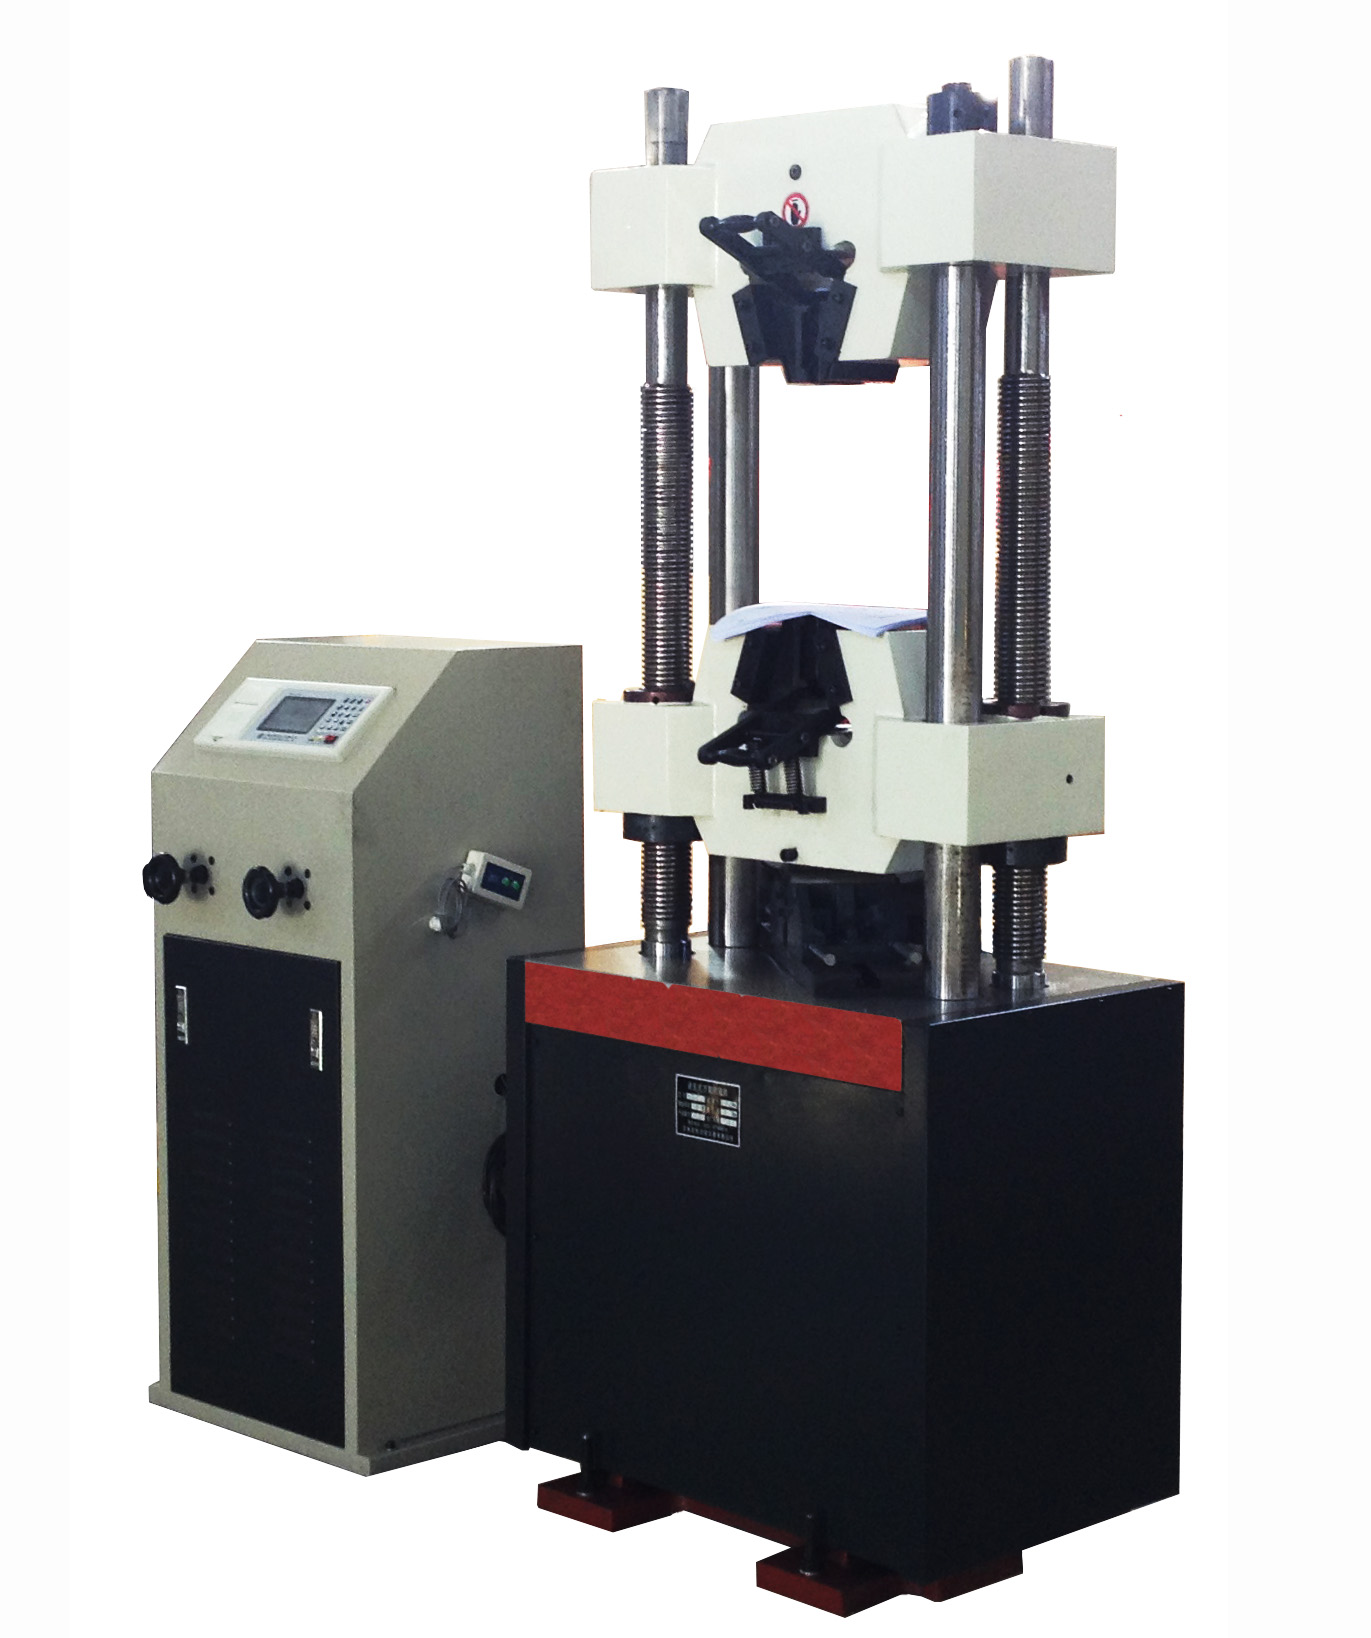 TES-1000B liquid crystal digital display hydraulic universal testing machine